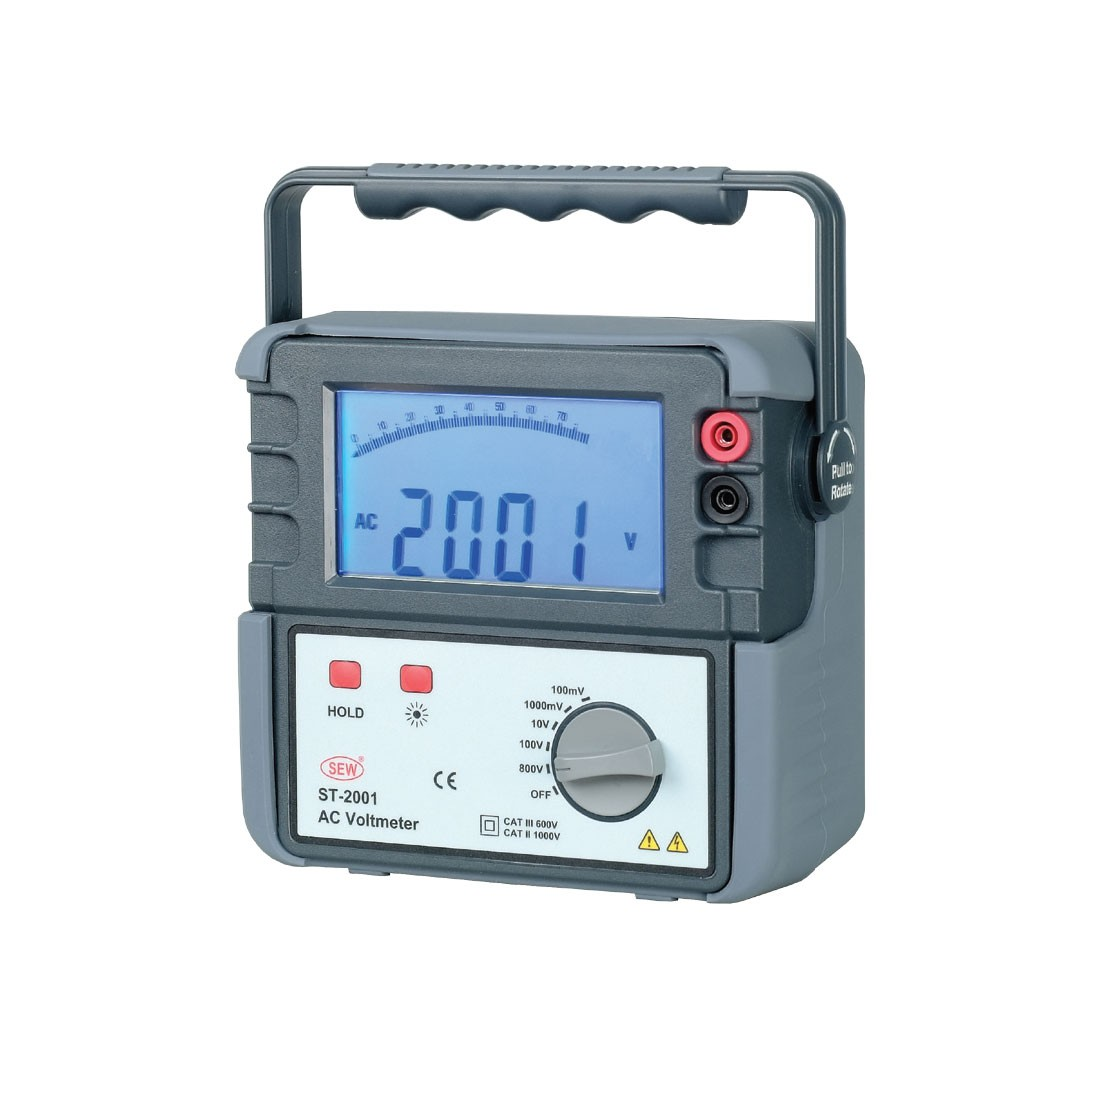 ST-2001ACV Large Digit Portable AC Multimeter